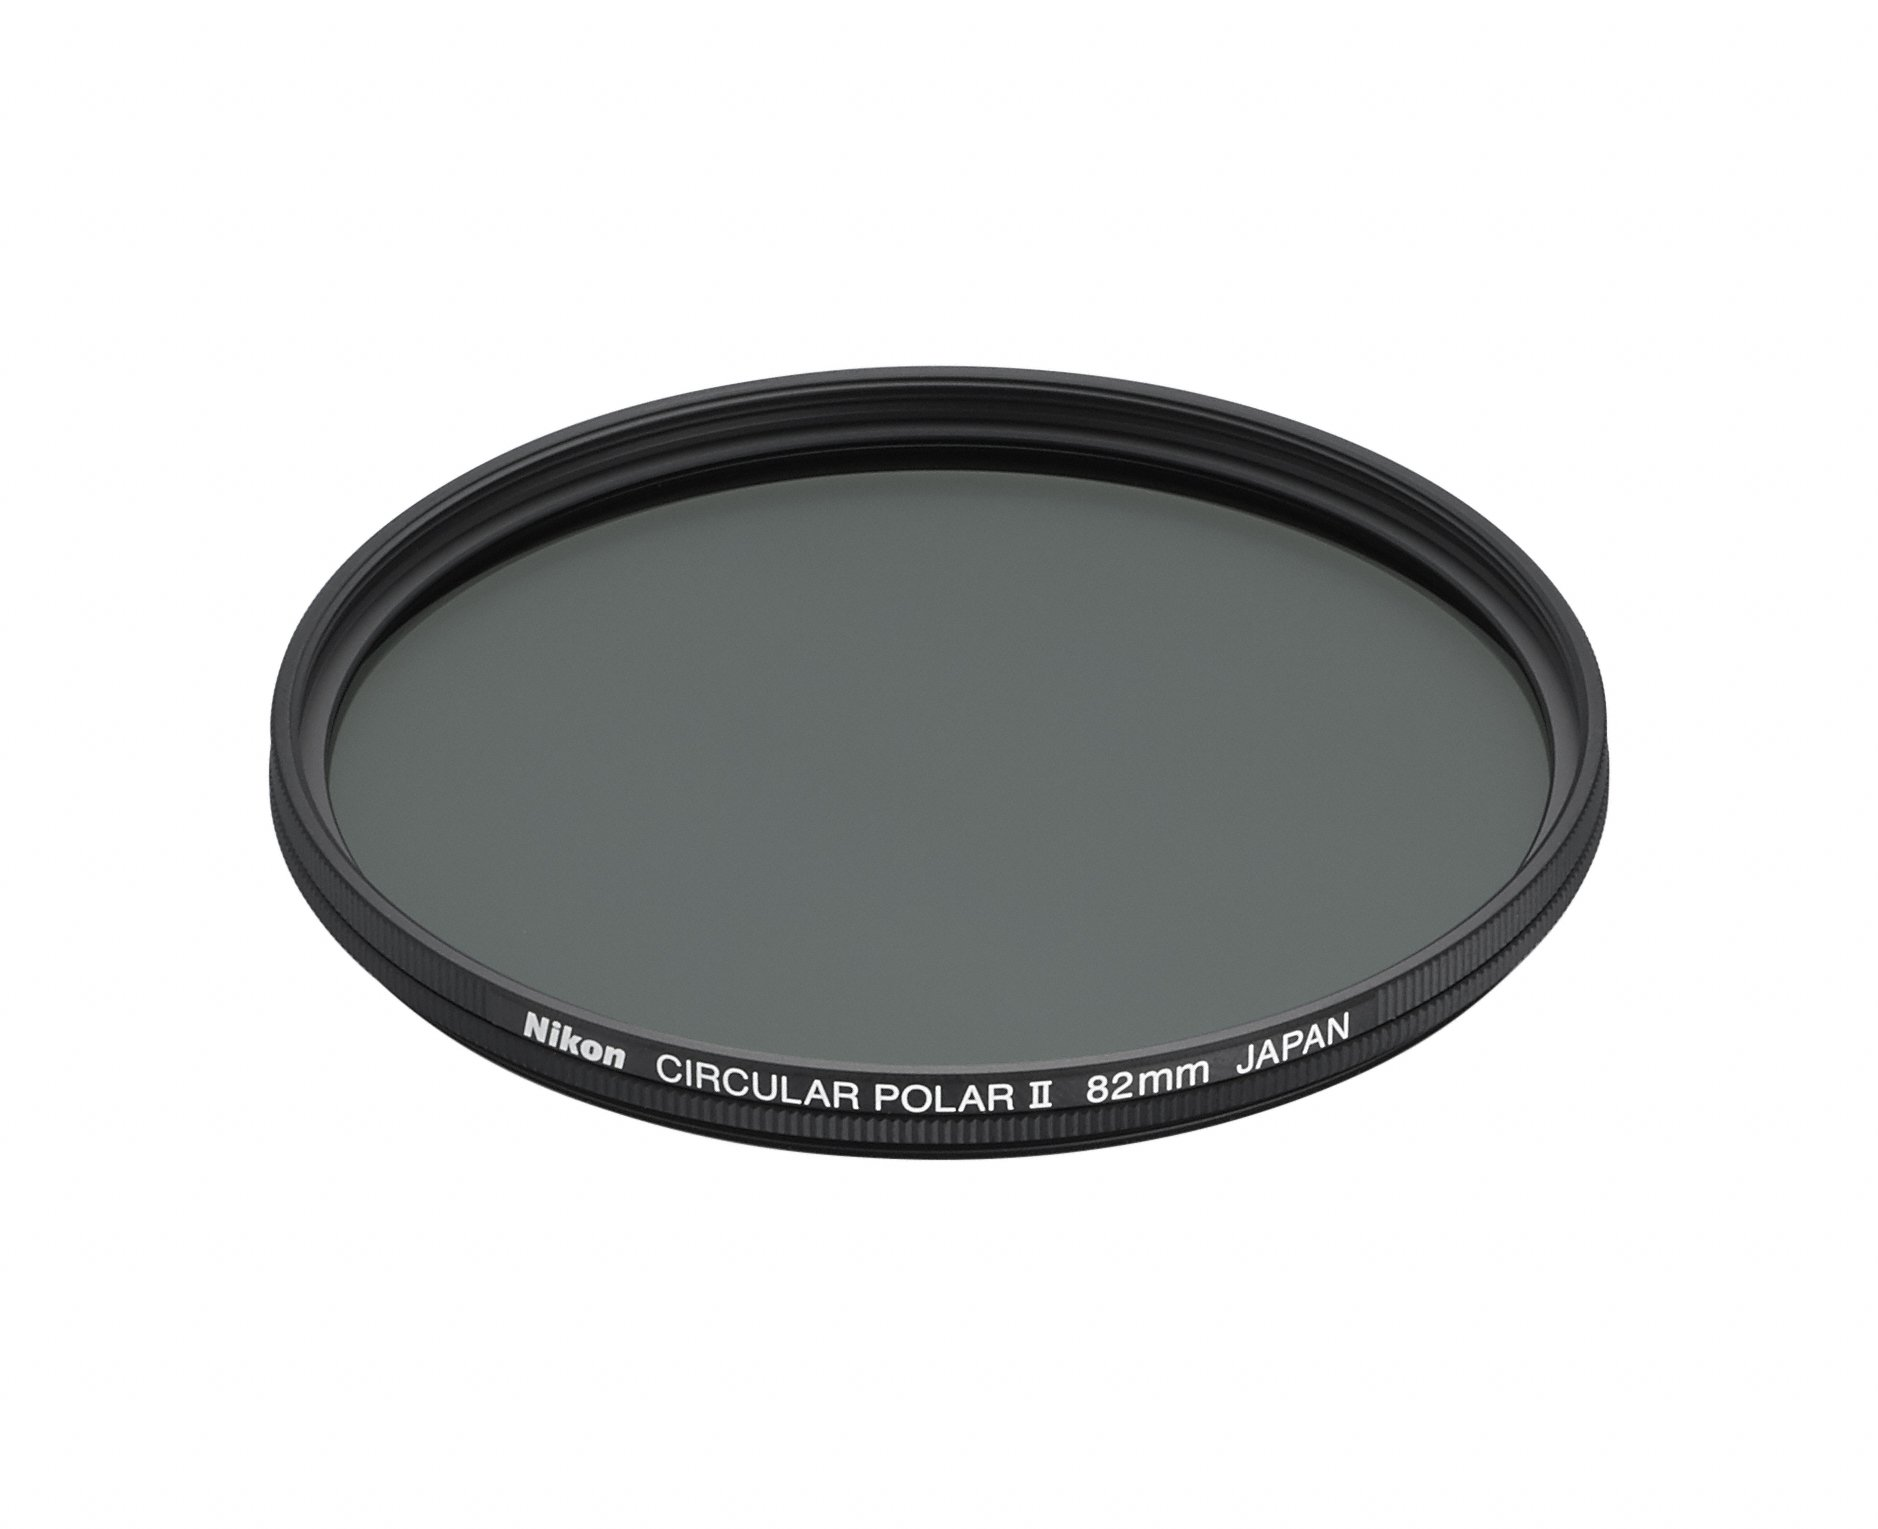 Nikon 82mm Circular Polarizer II Filter by Nikon